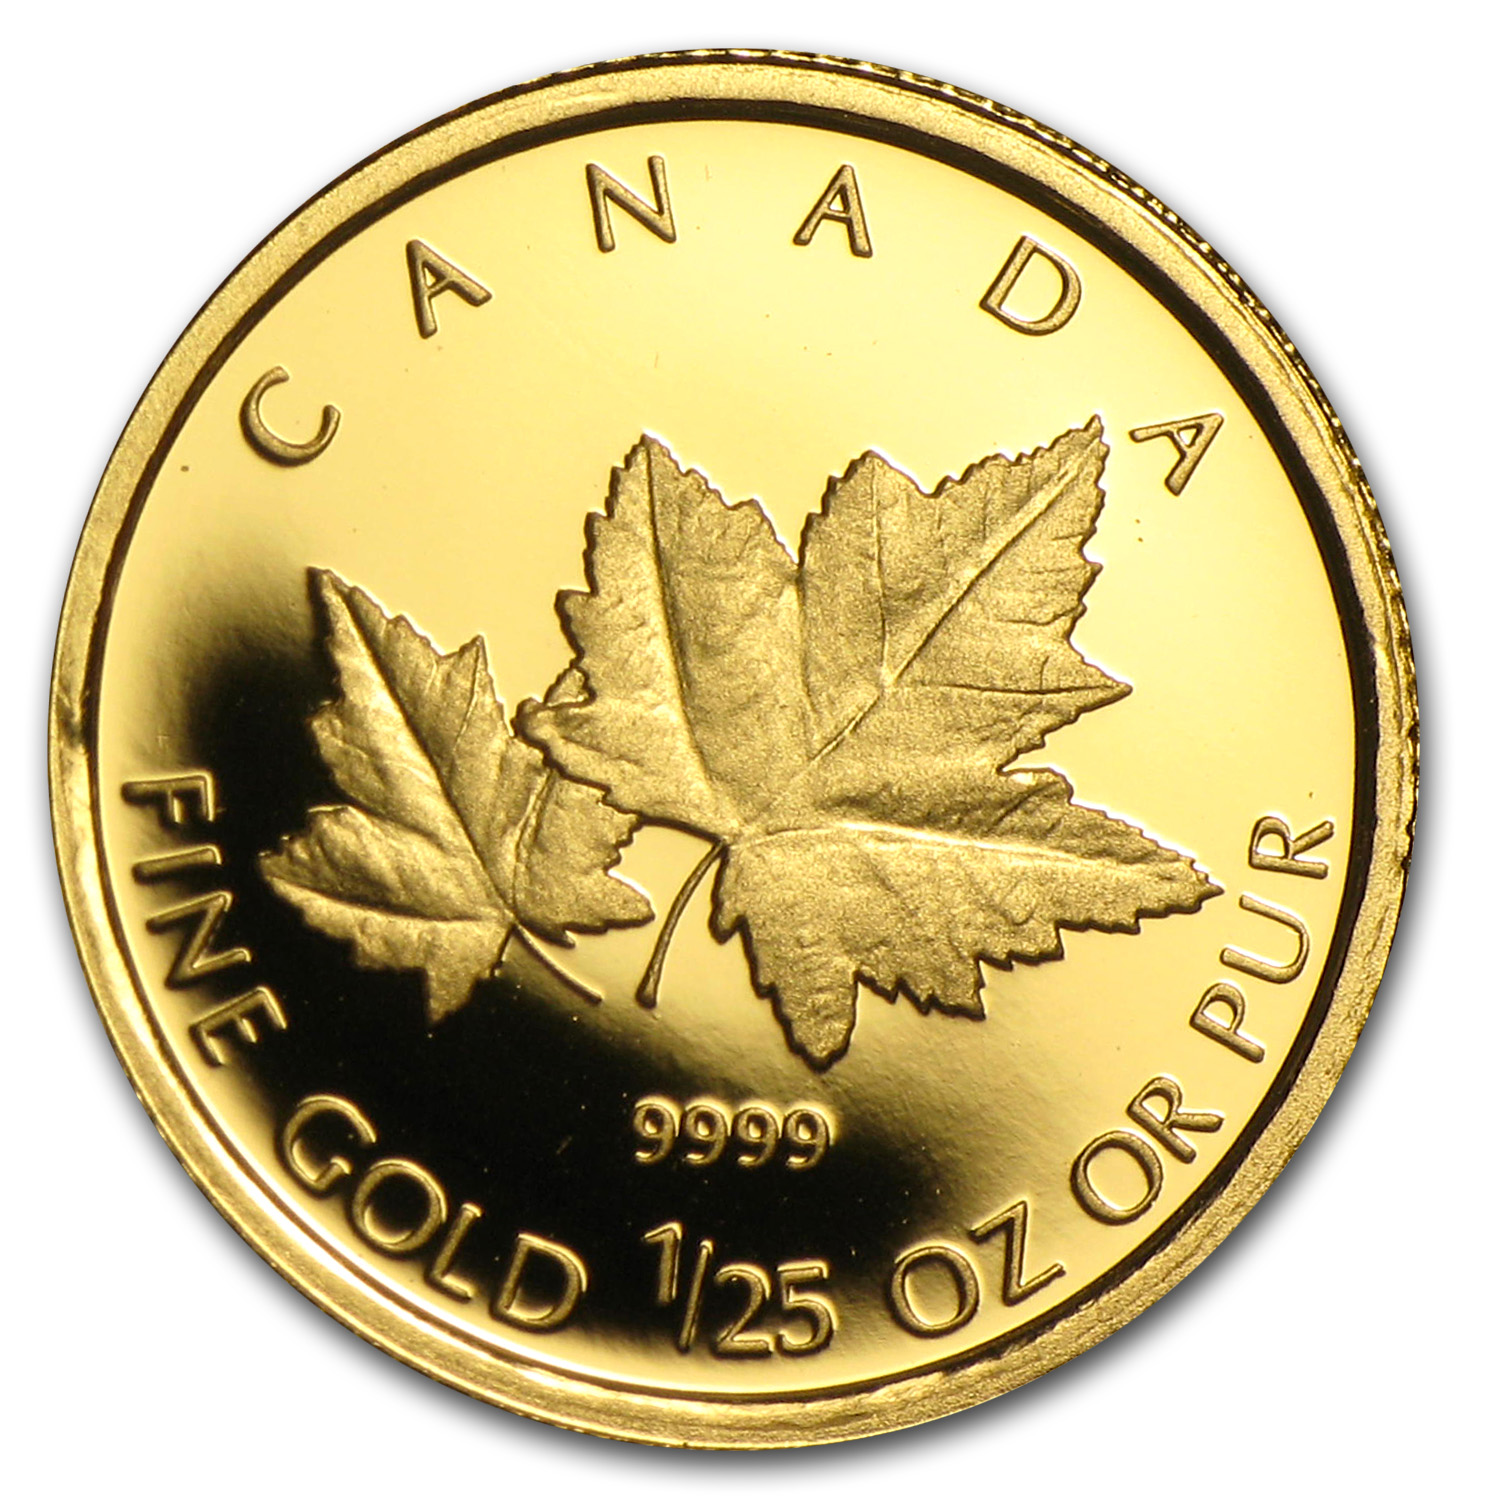 2009 Canada 1/25 oz Proof Gold $0.50 Red Maple